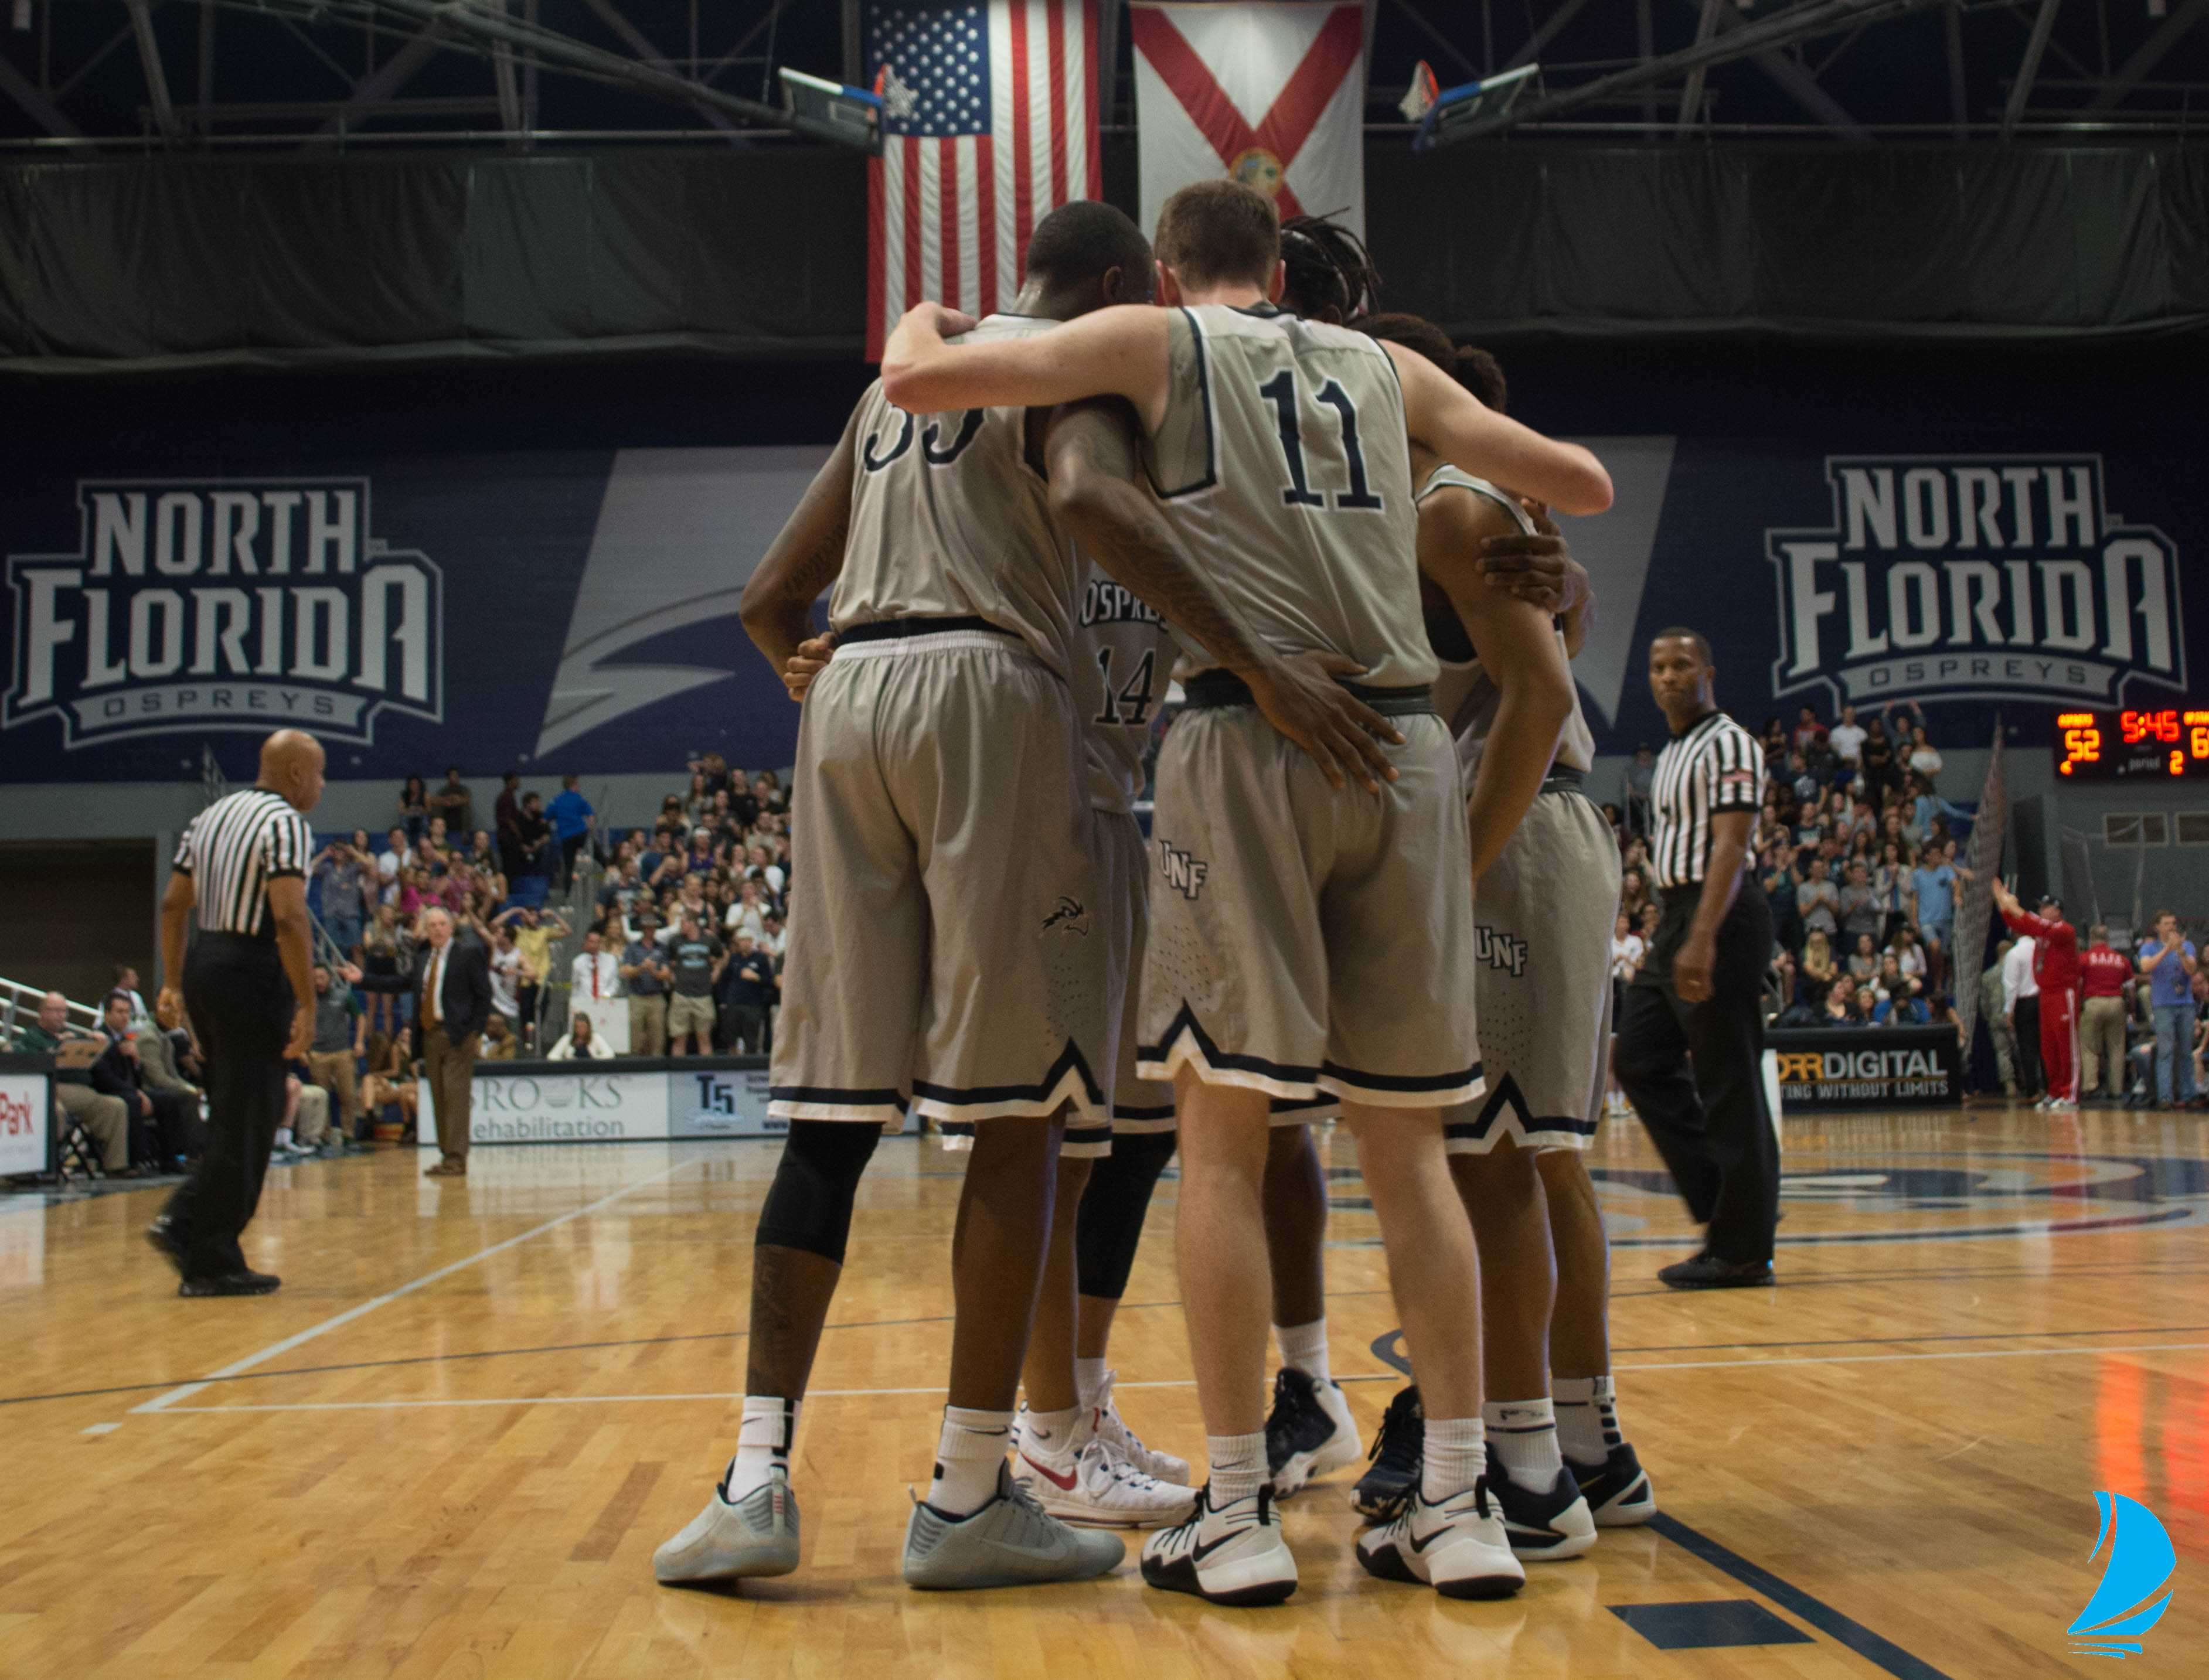 North Florida loses 84-71 to USC Upstate